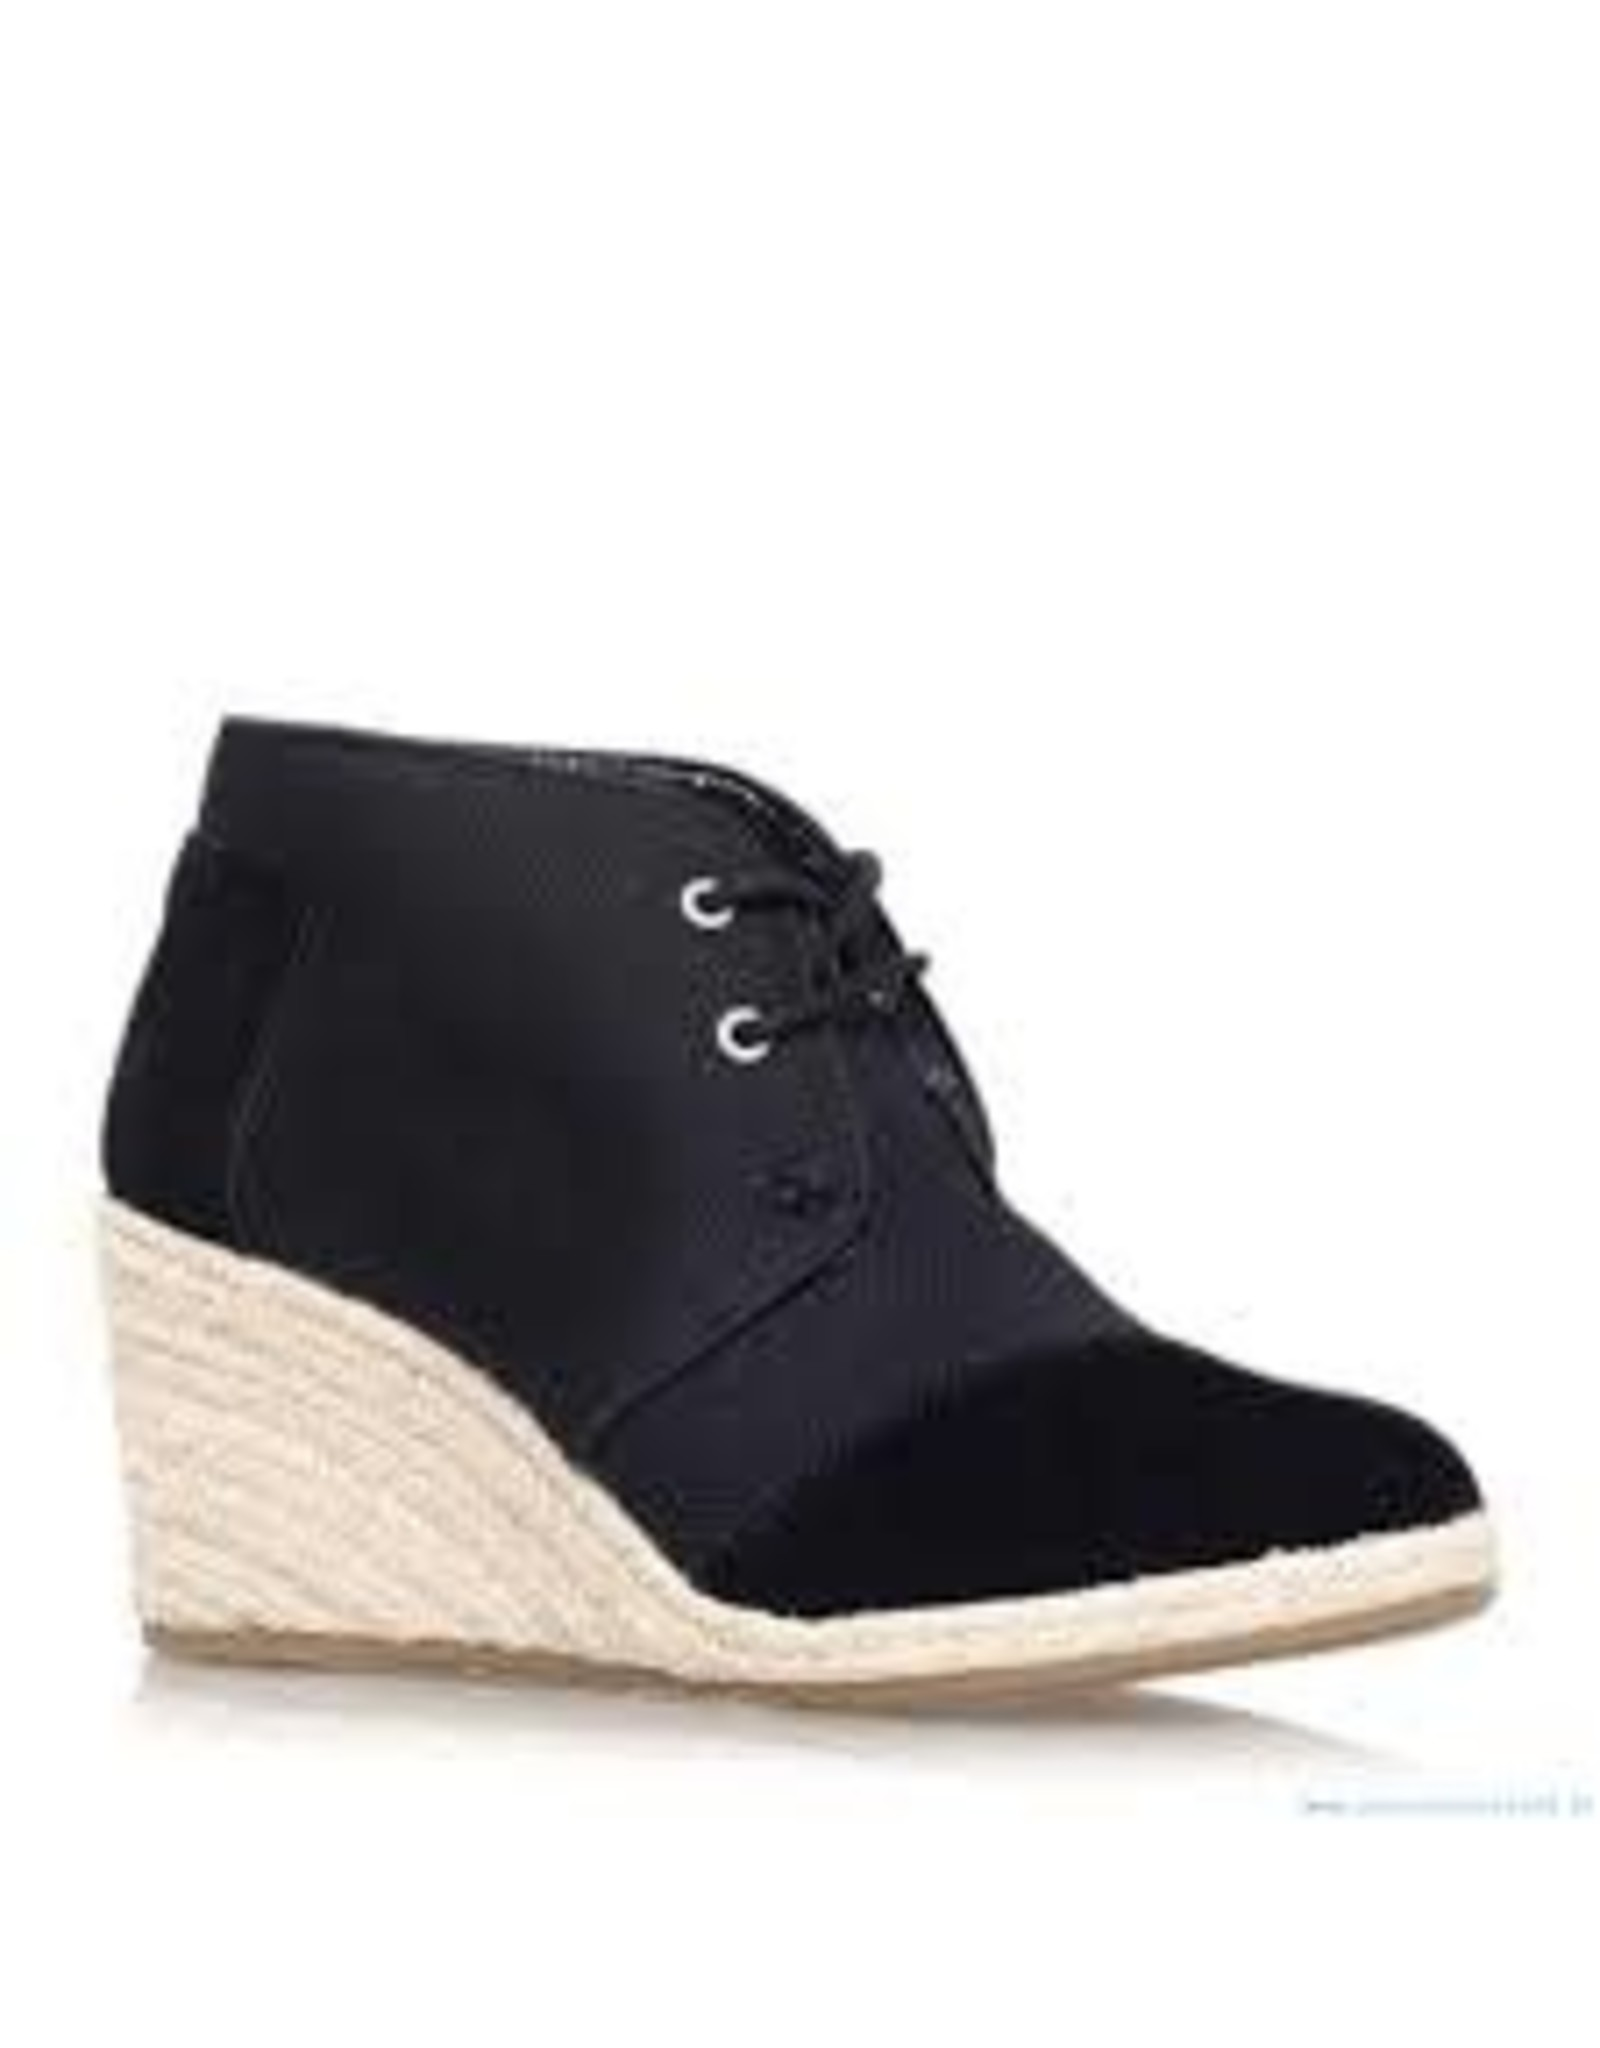 Toms - botte desert wedge